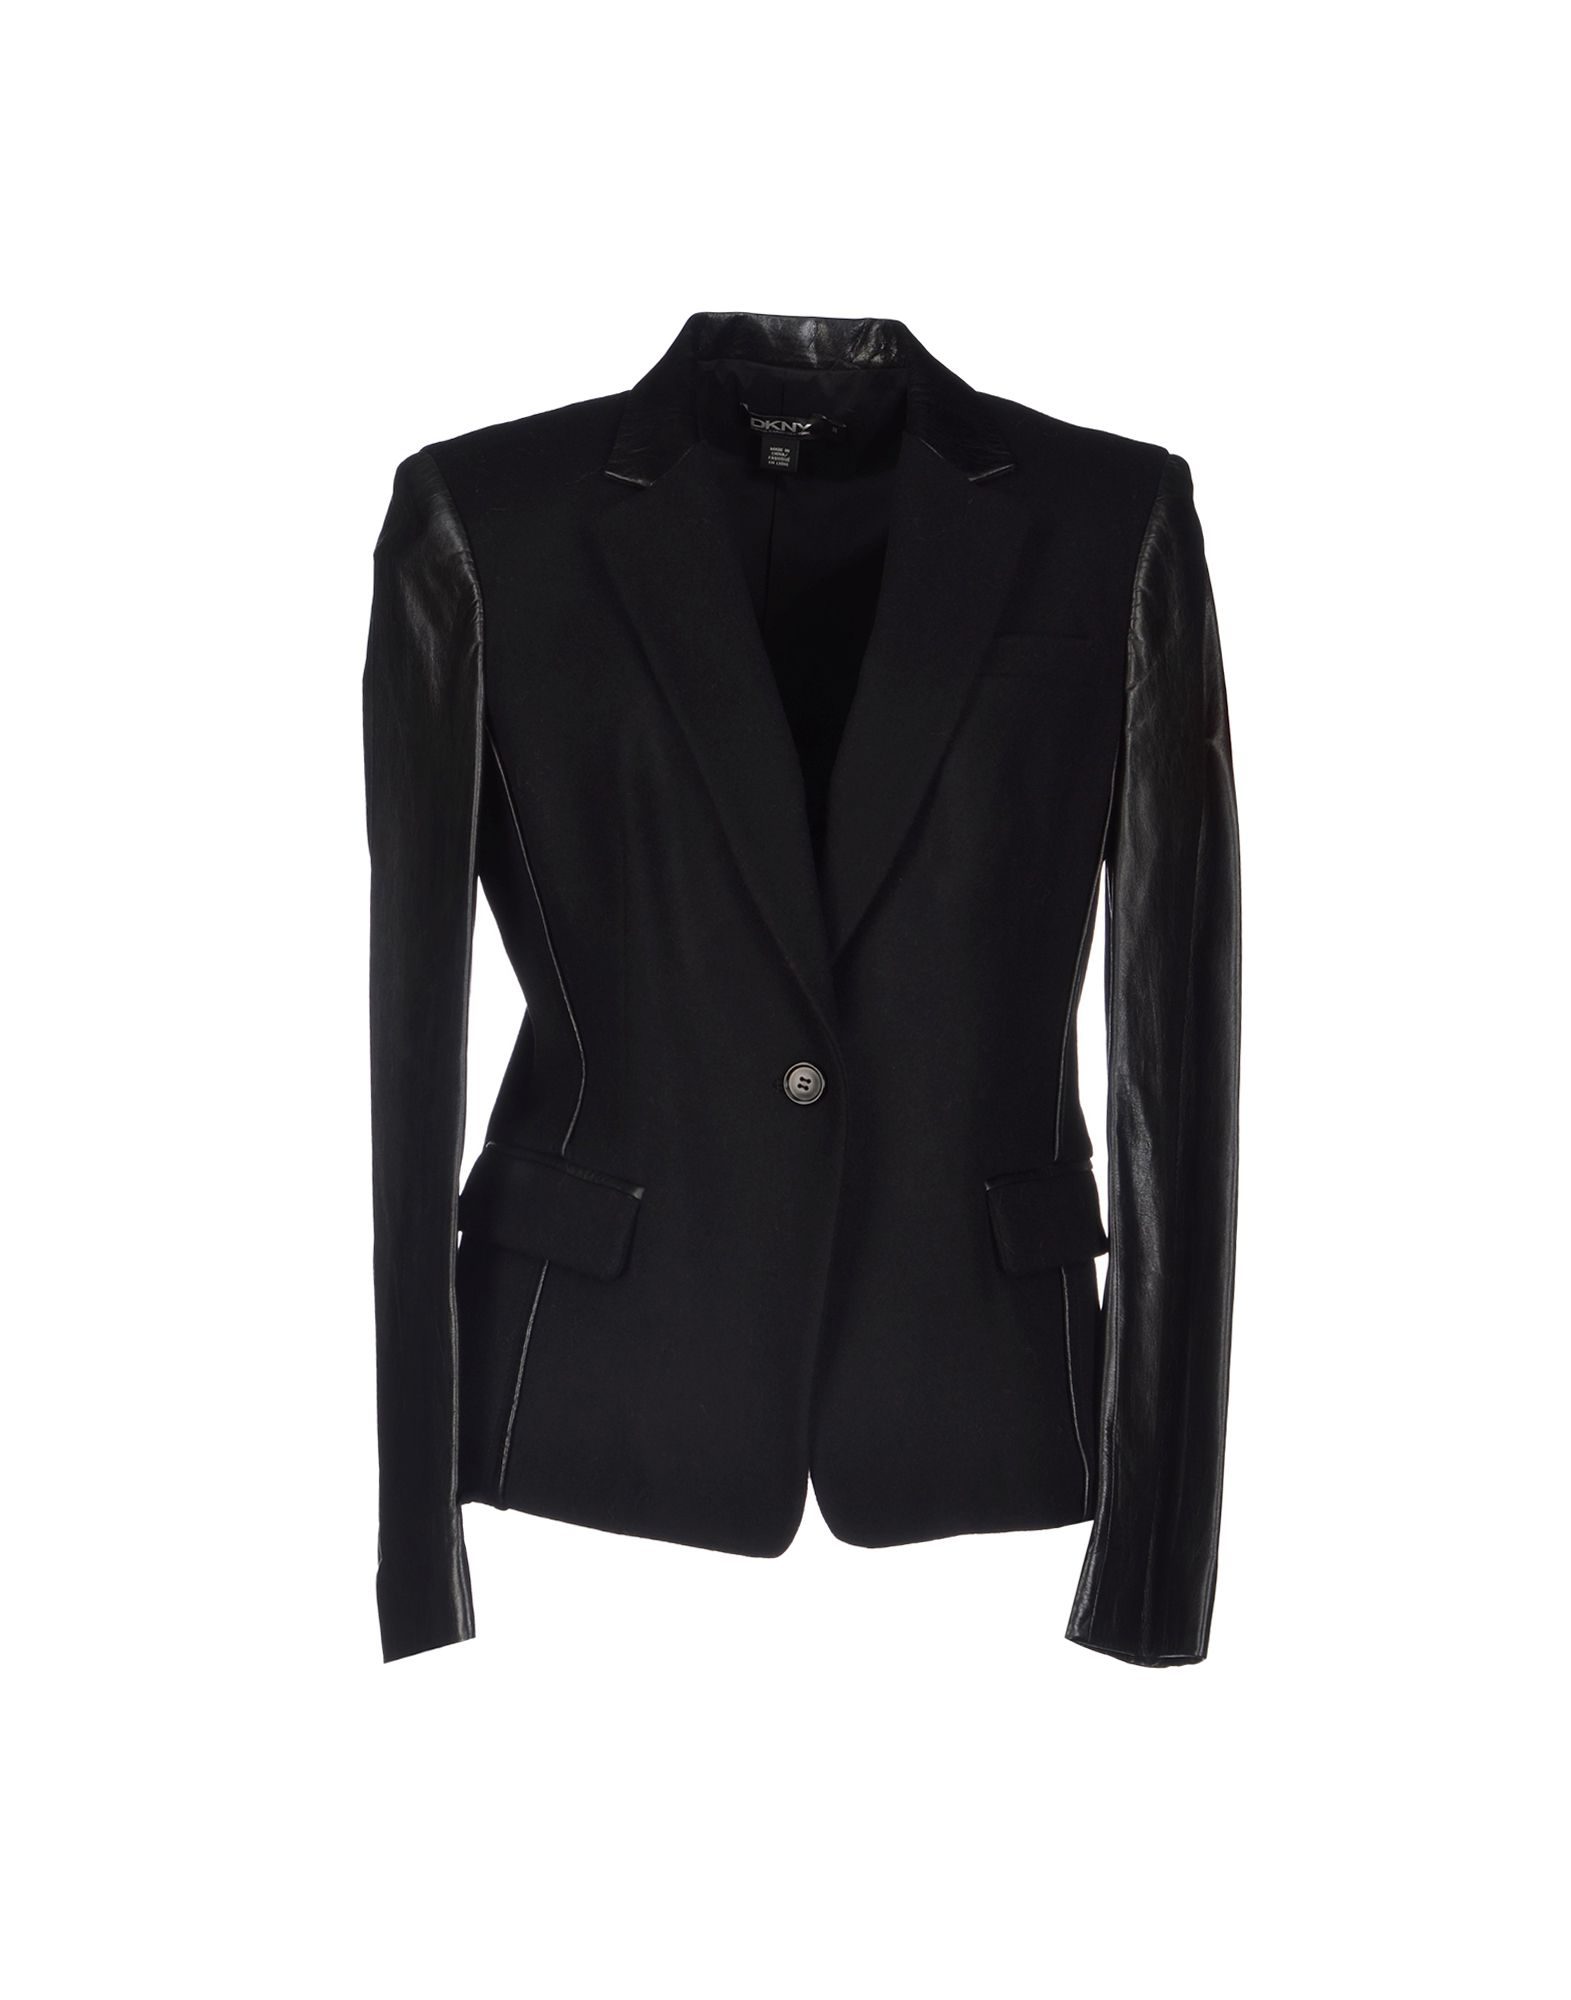 Giacca Dkny Donna - Acquista online su vD9PDUnH